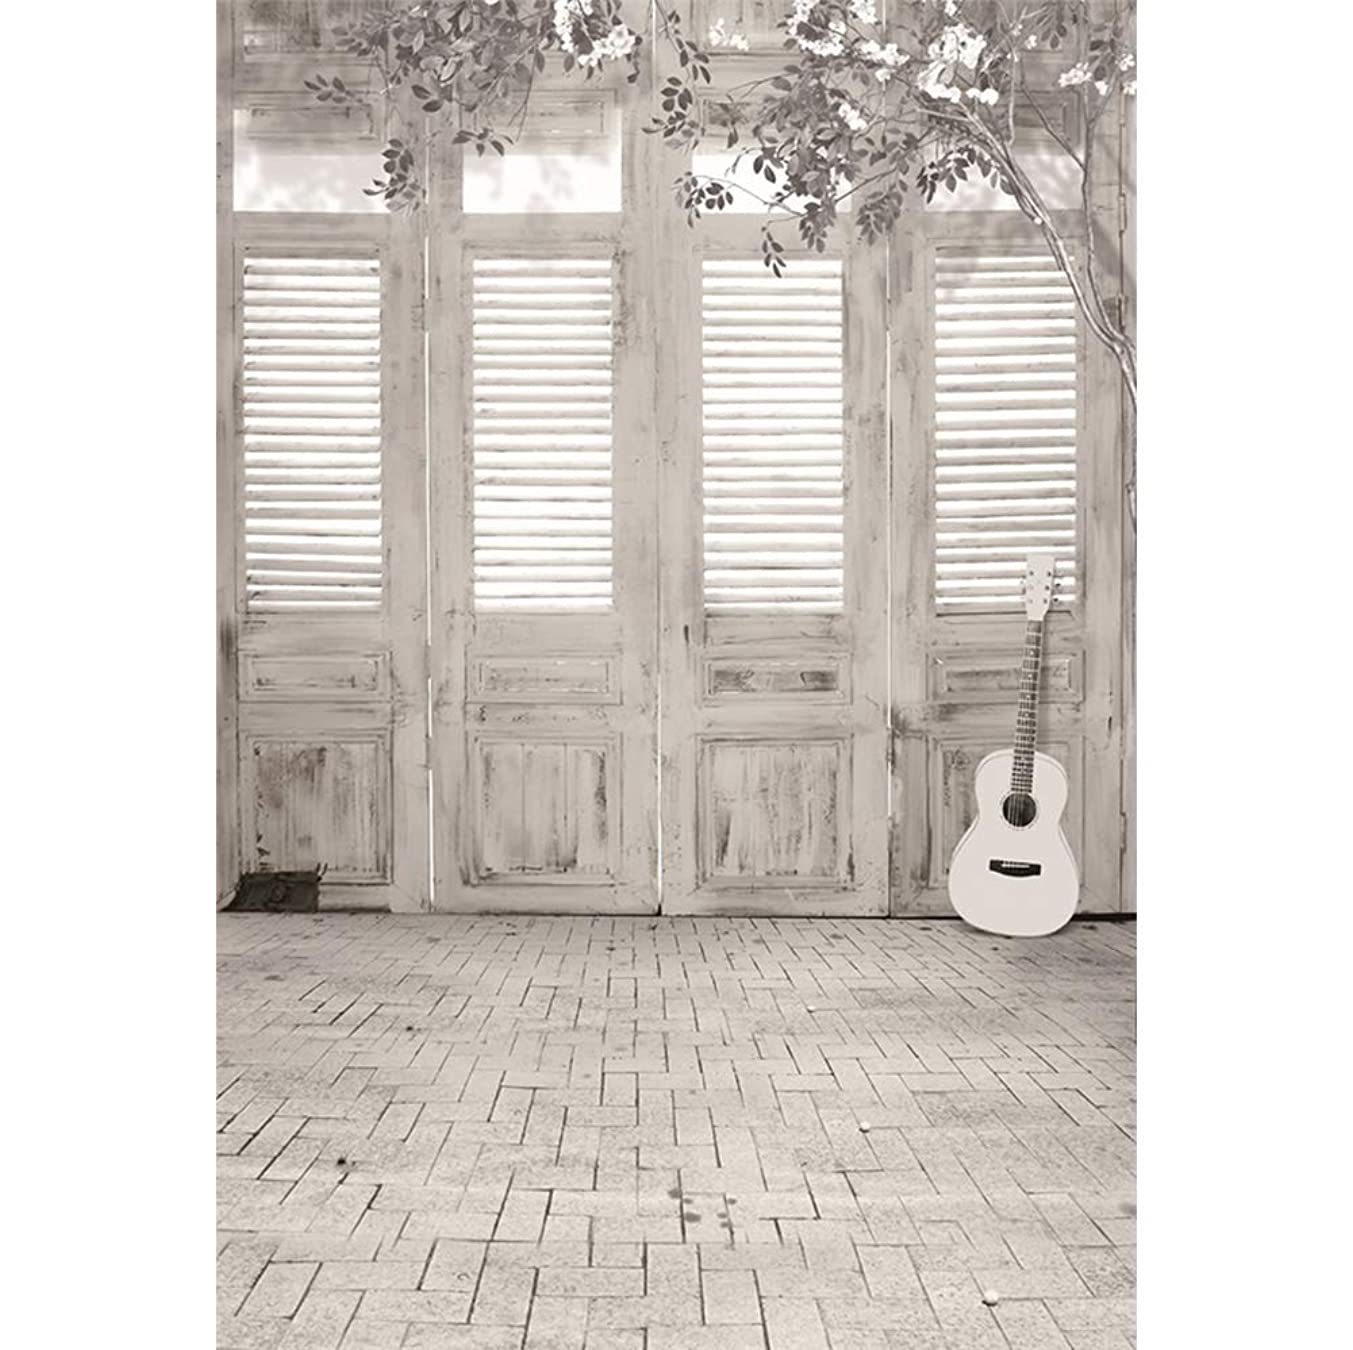 CSFOTO 3x5ft Interior Decoration Backdrop Living Room Decor Background for Photography Bedroom Decor Baby Shower Birthday Party Banner Black and White Color Guitar Kids Portraits Studio Props